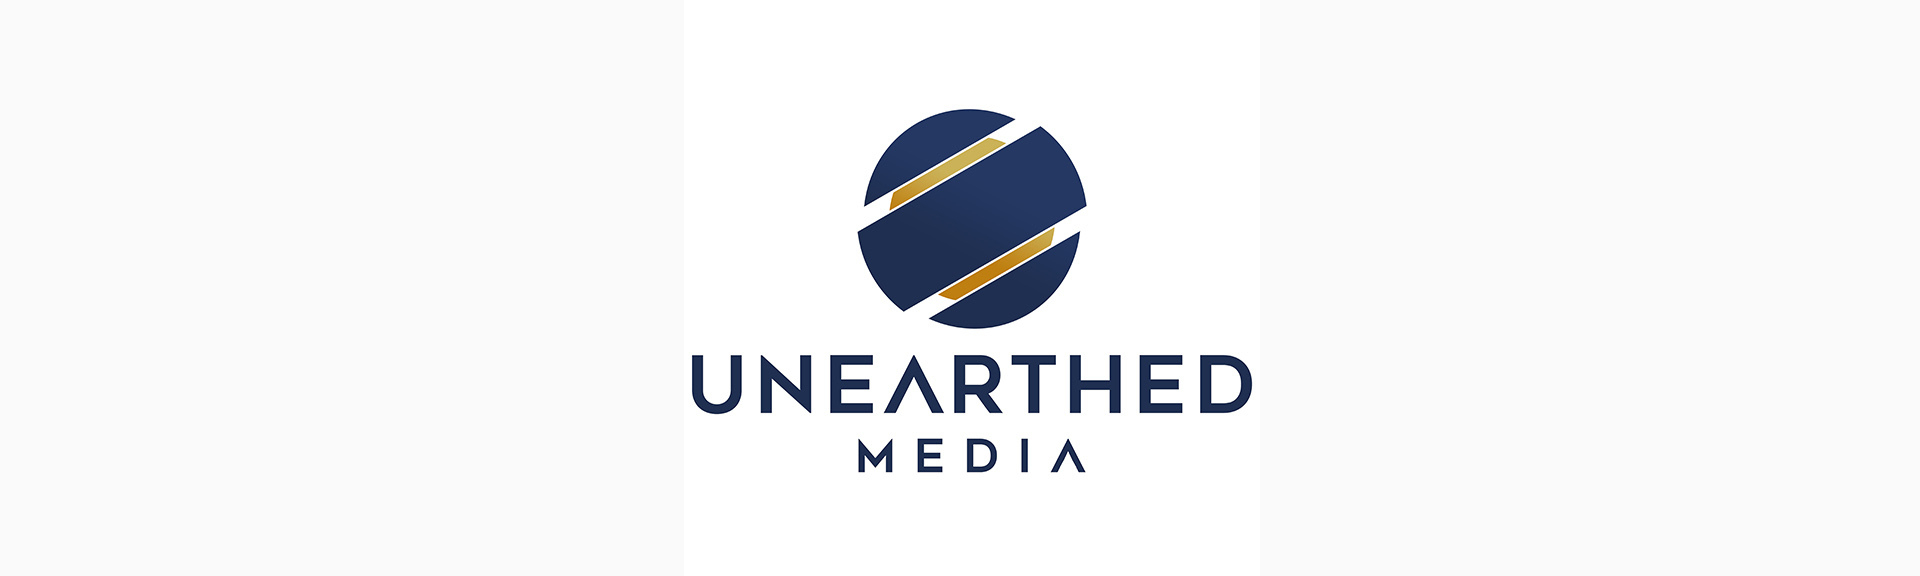 Unearthed altspace